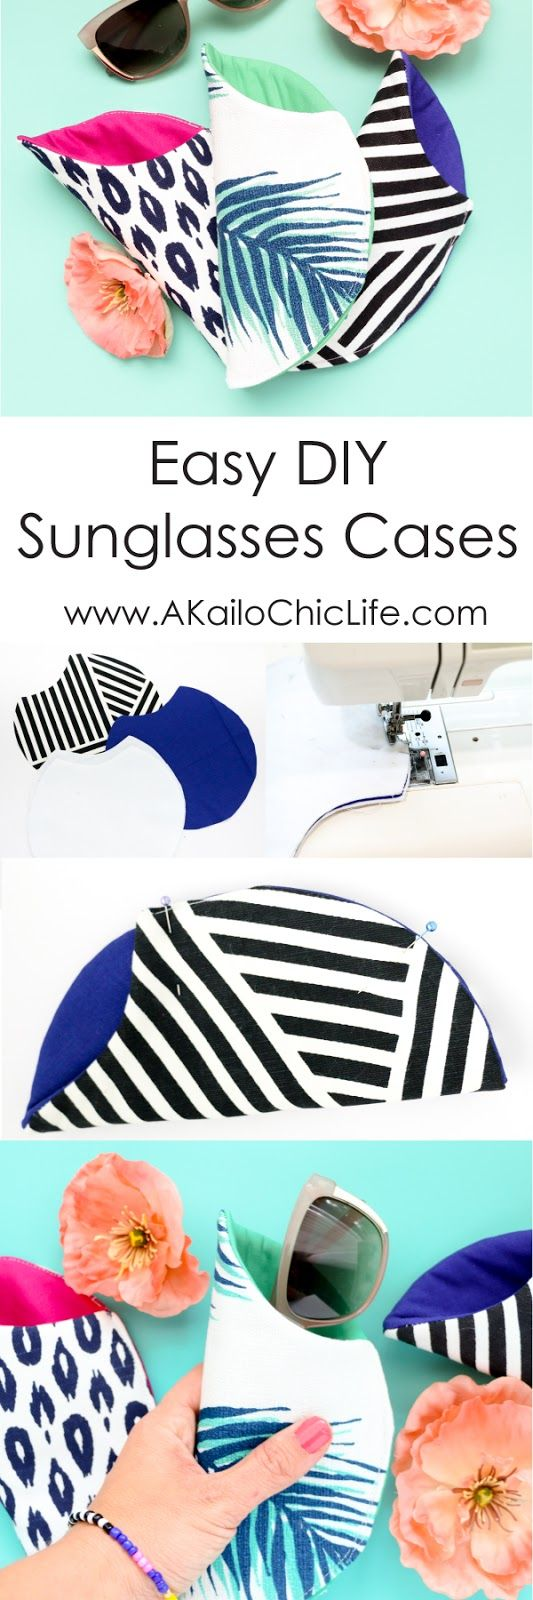 Make easy sunglasses cases in any colors and patterns you please!